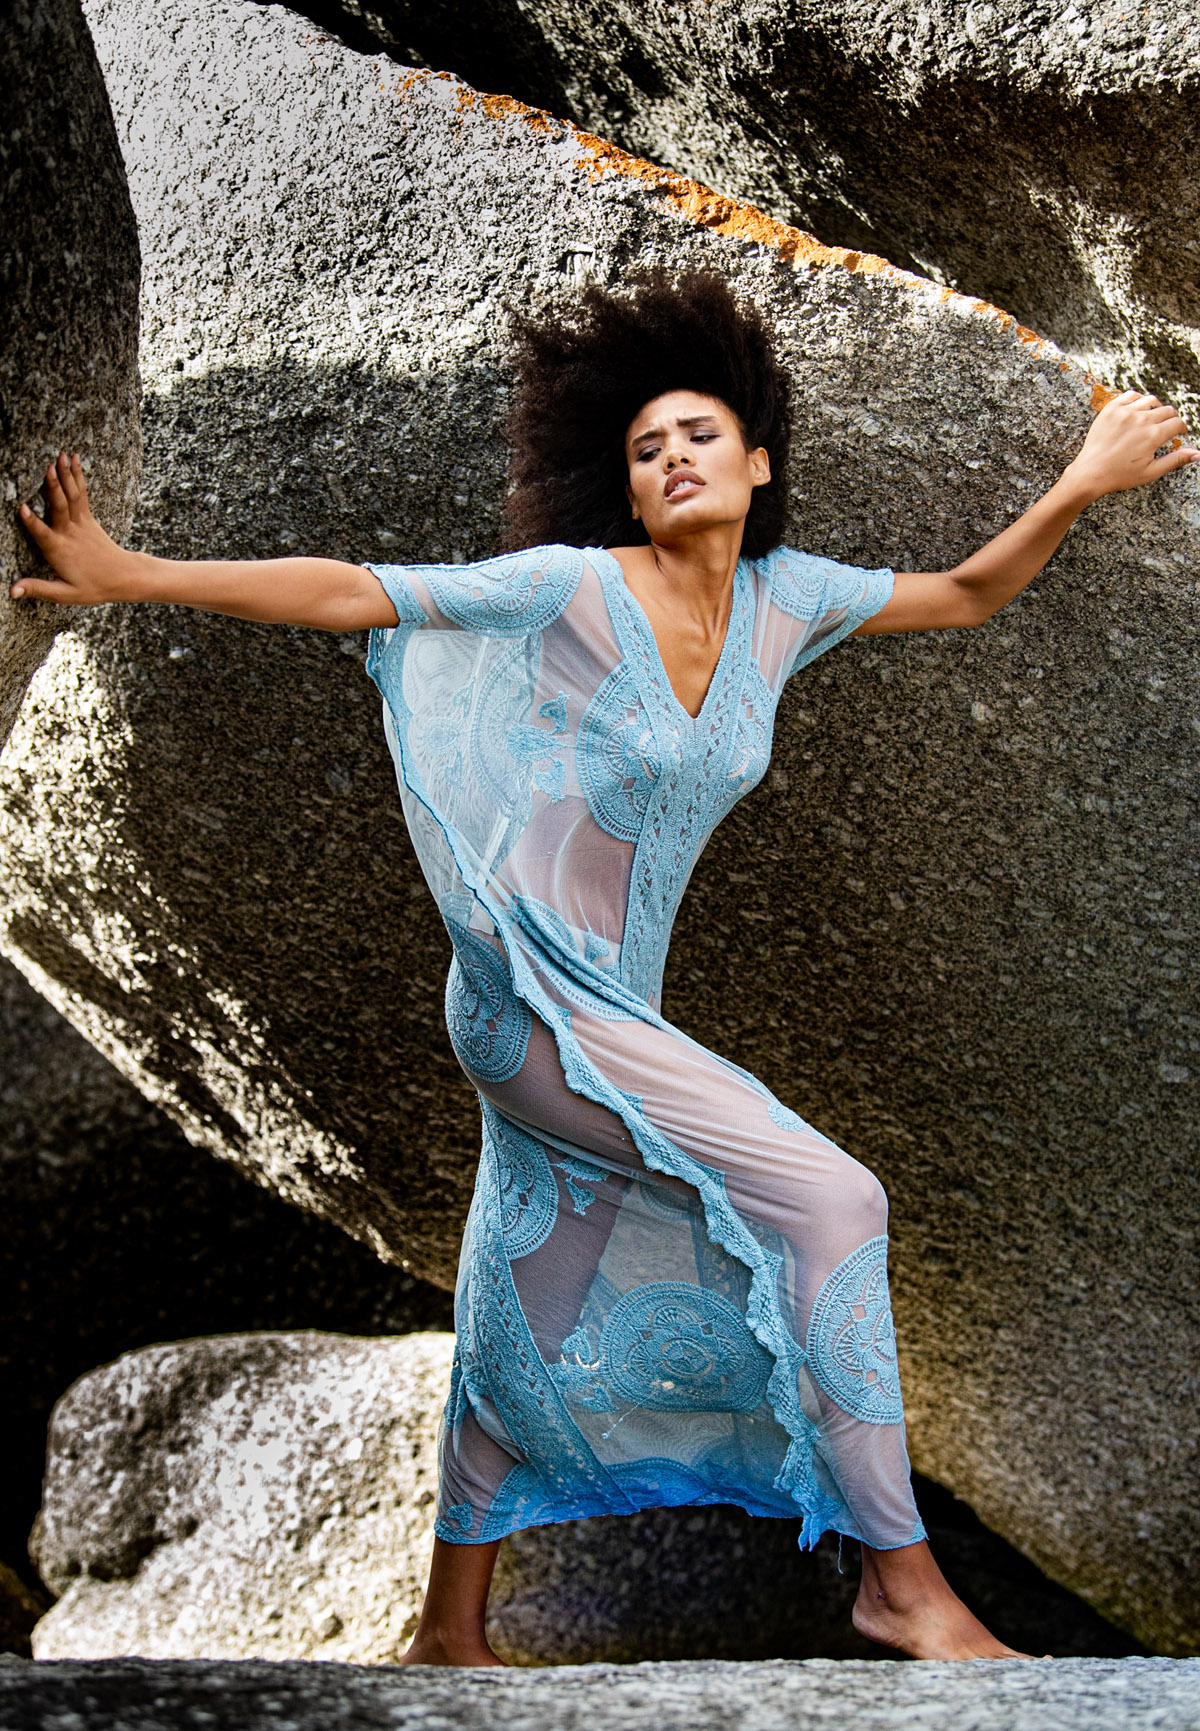 Africa Fashion Editorial by Peter Mueller Photography .jpg56